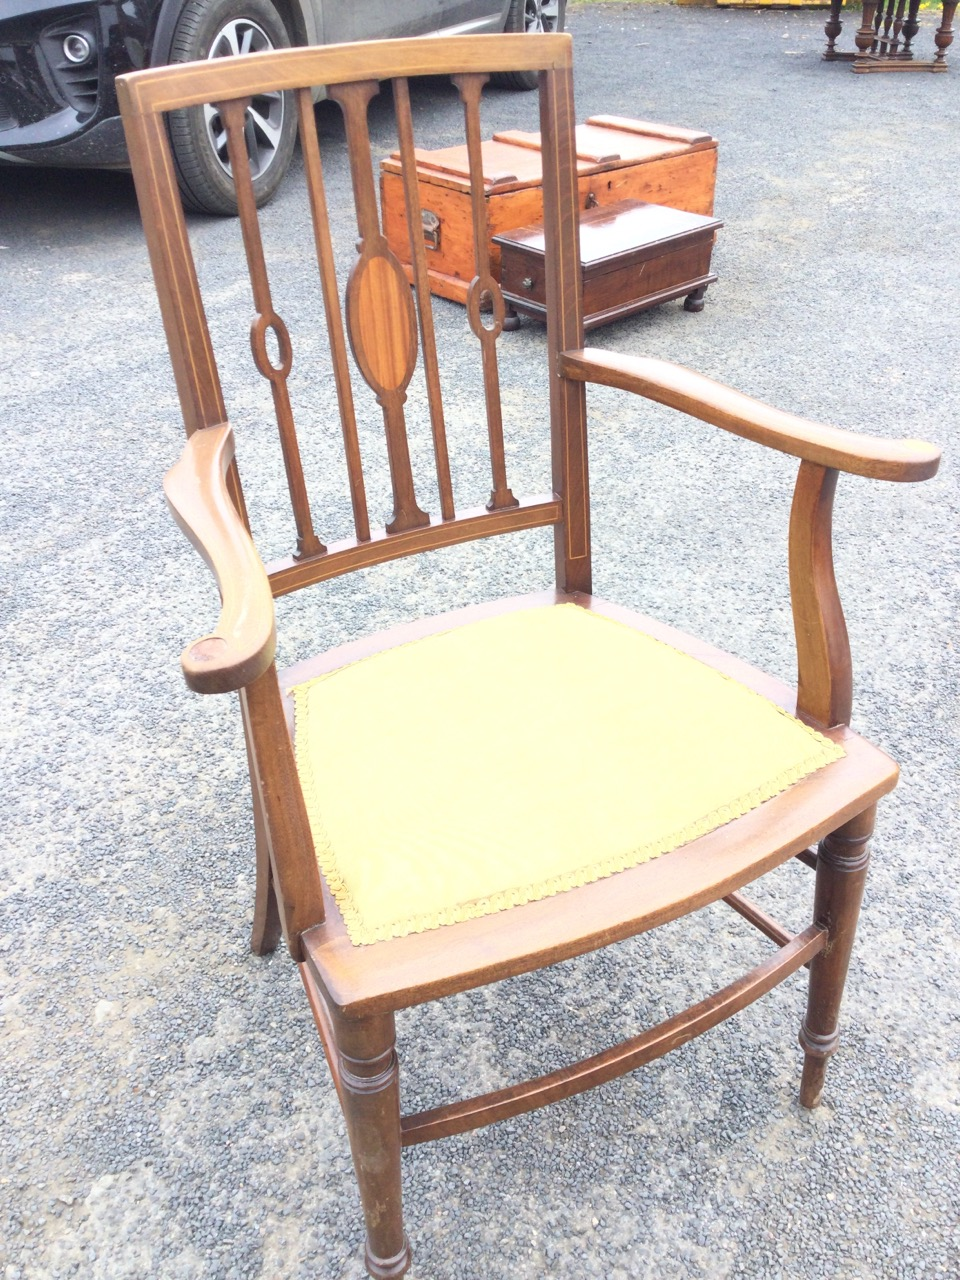 An Edwardian mahogany armchair inlaid with boxwood stringing, the back with slender spindles - Image 3 of 3